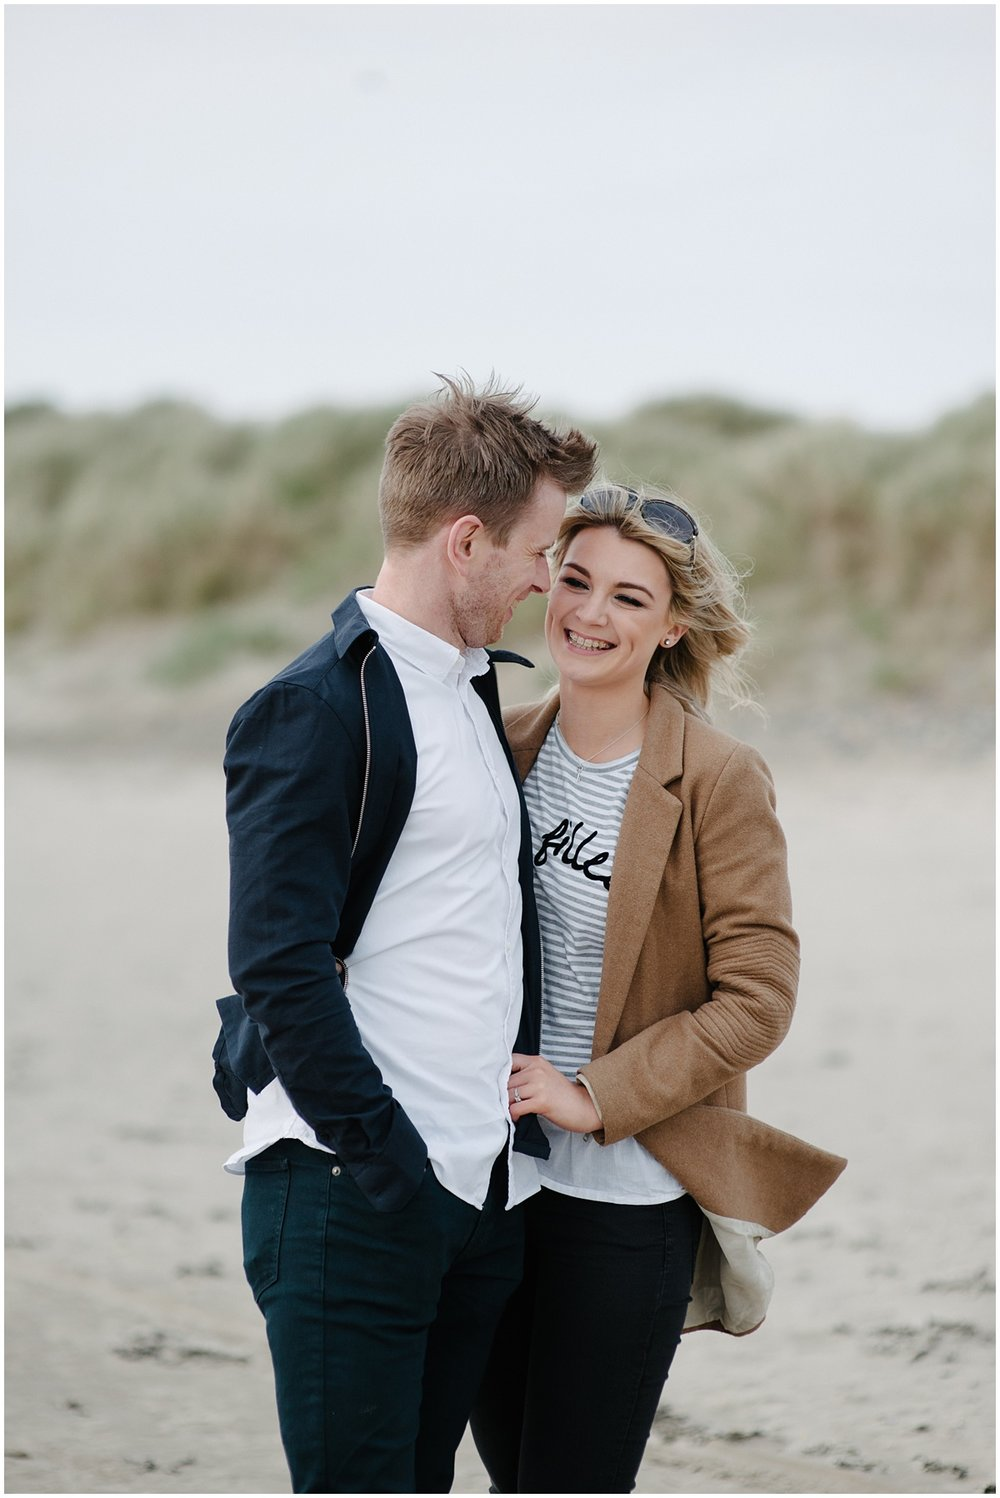 jade_donal_pre_wedding_rossnowlagh_jude_browne_photography_0008.jpg